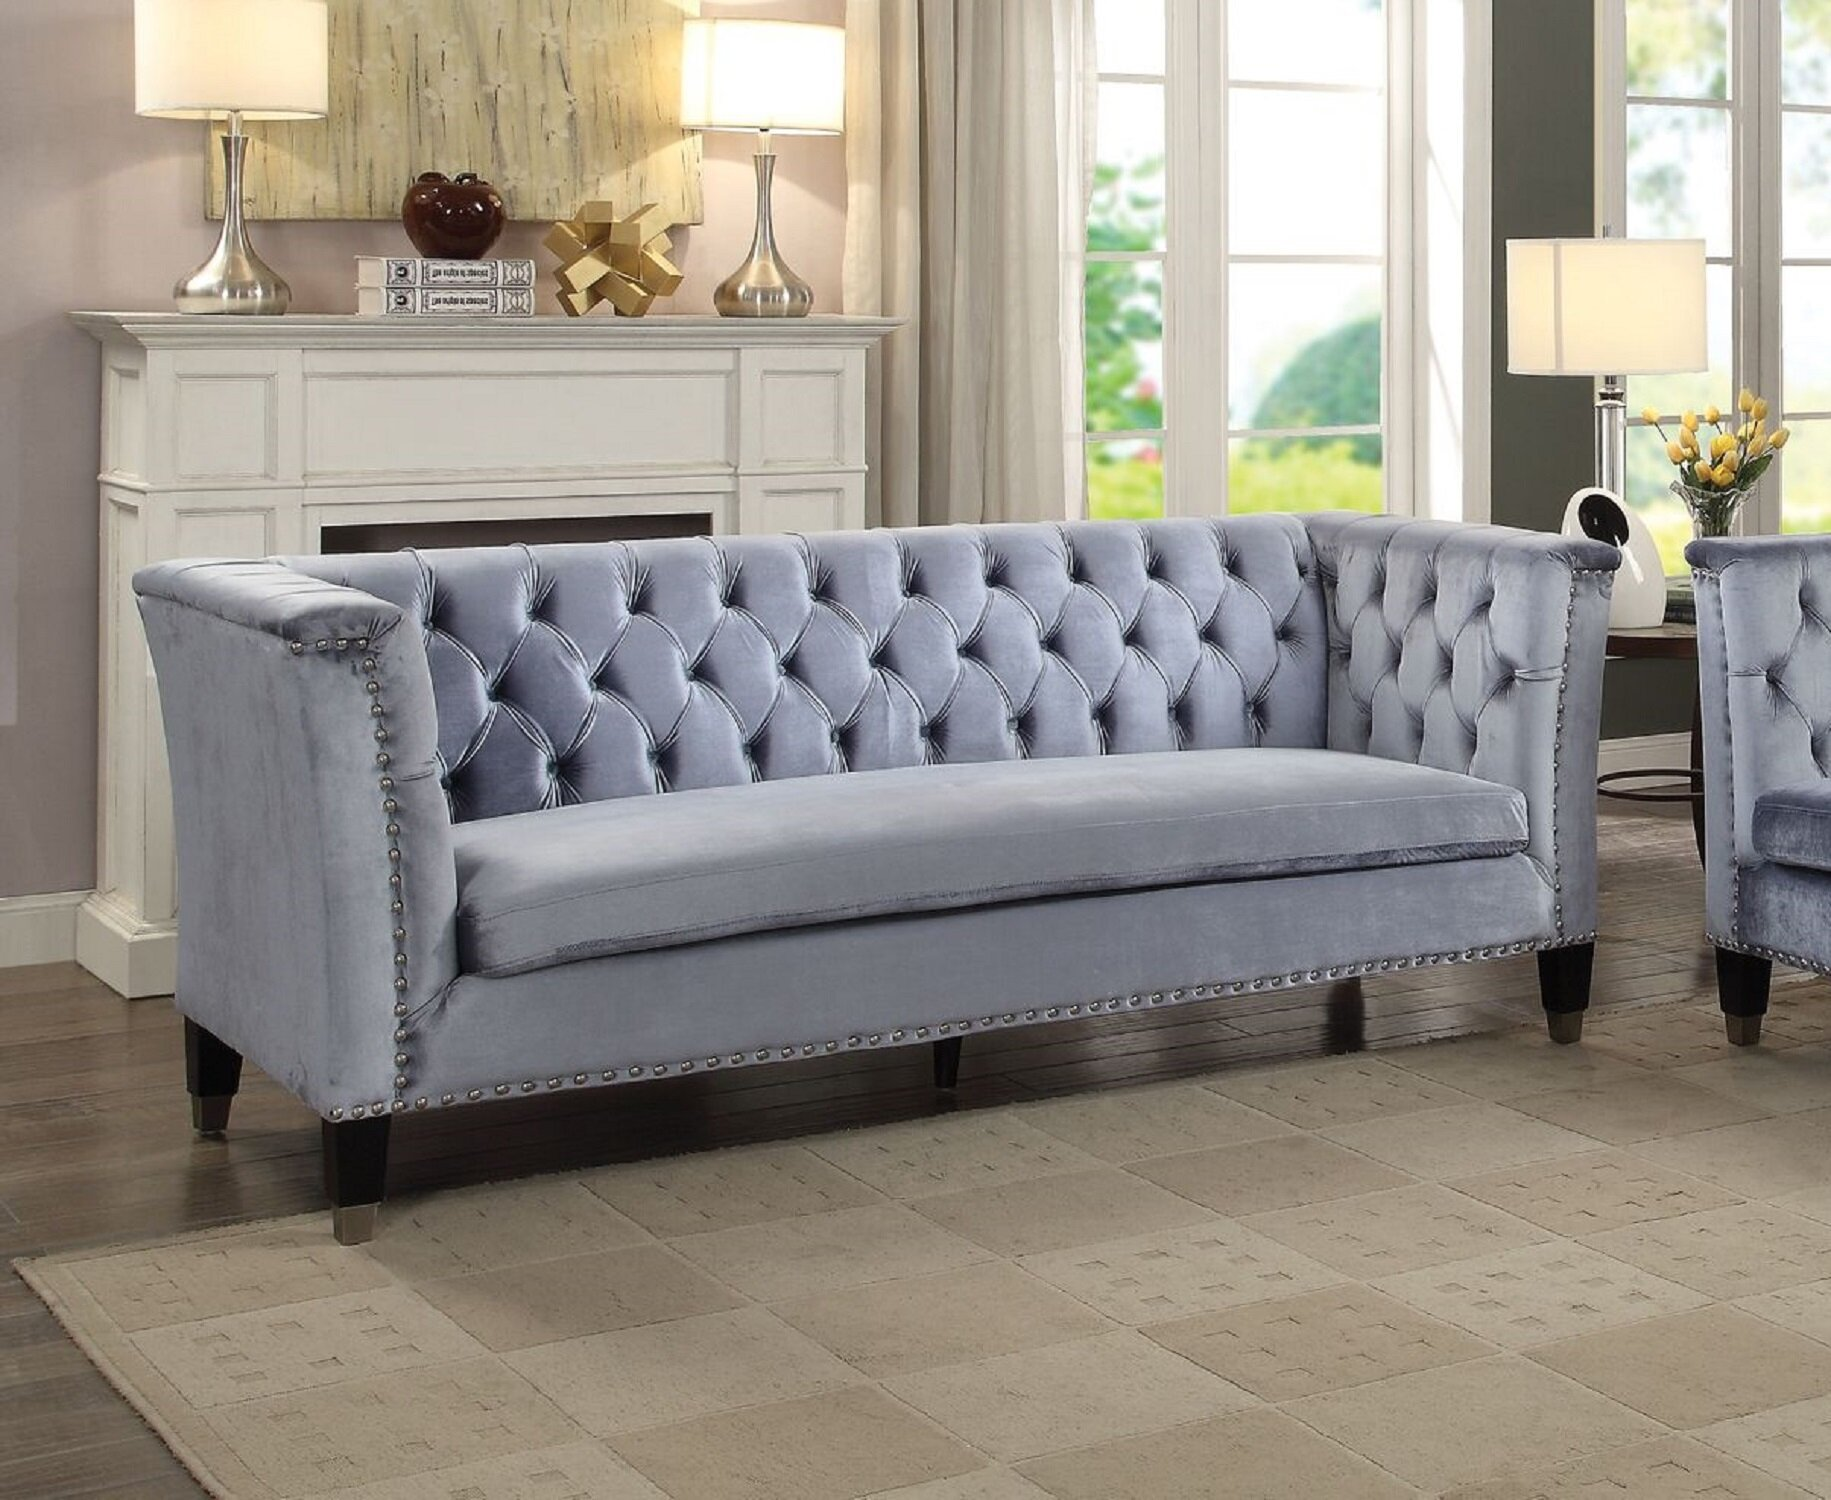 Excellent Friedell Mid Century Chesterfield Sofa Pabps2019 Chair Design Images Pabps2019Com